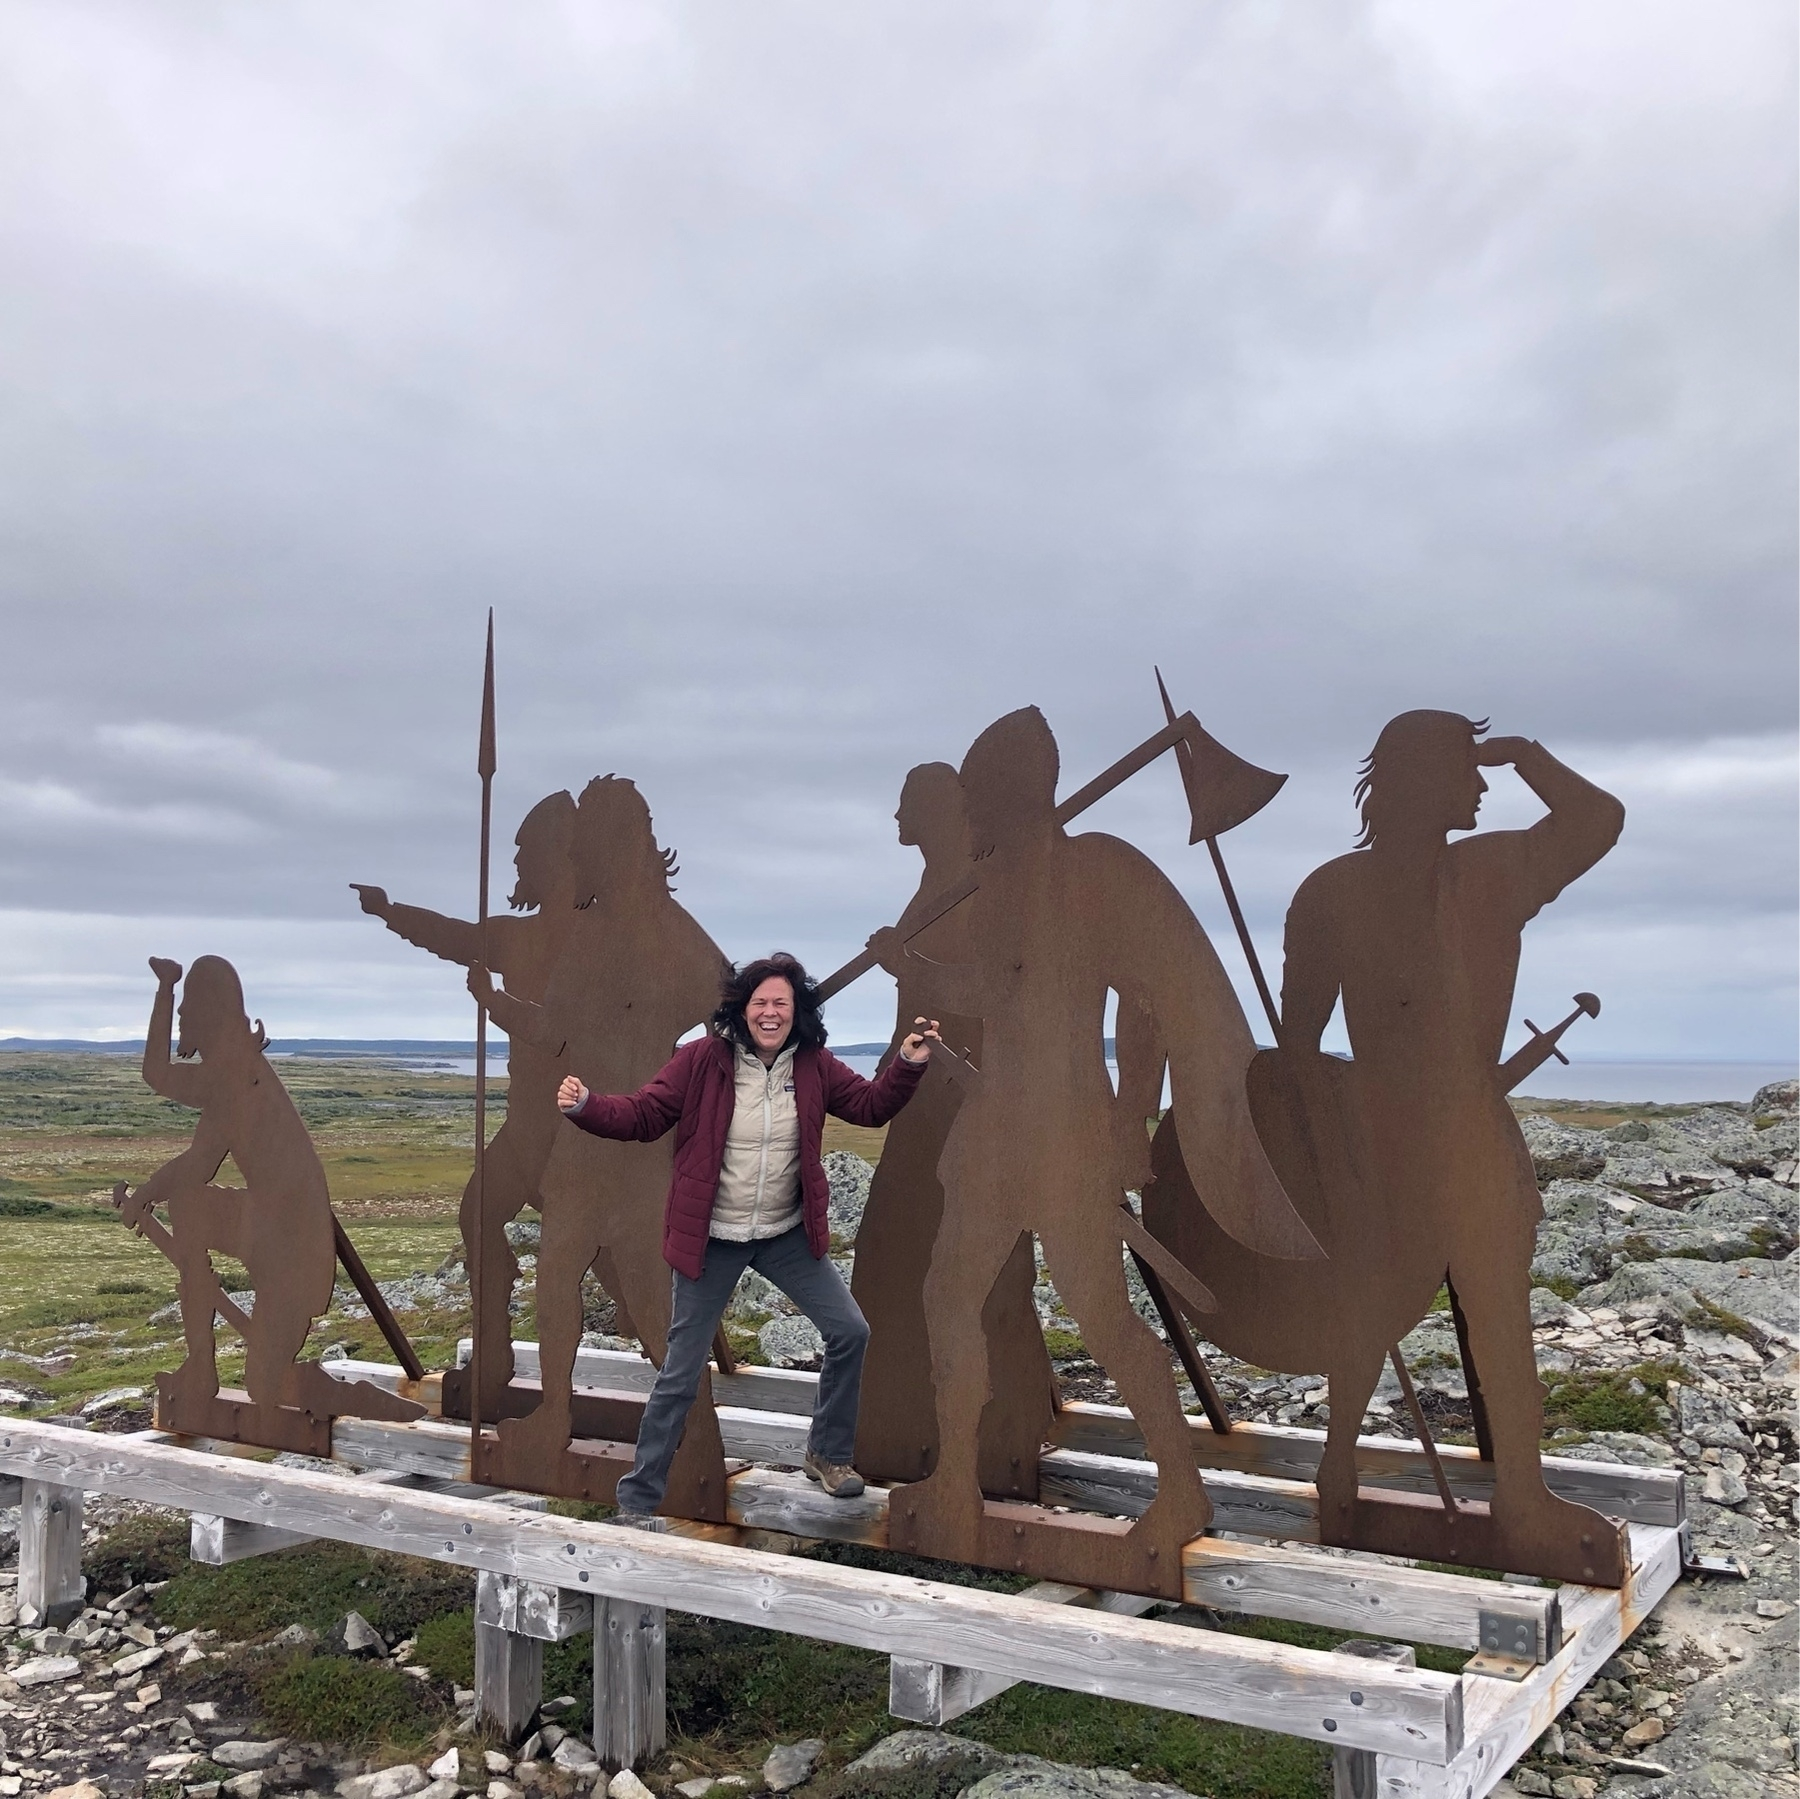 a woman in the middle of a rusty scupture of various explorers